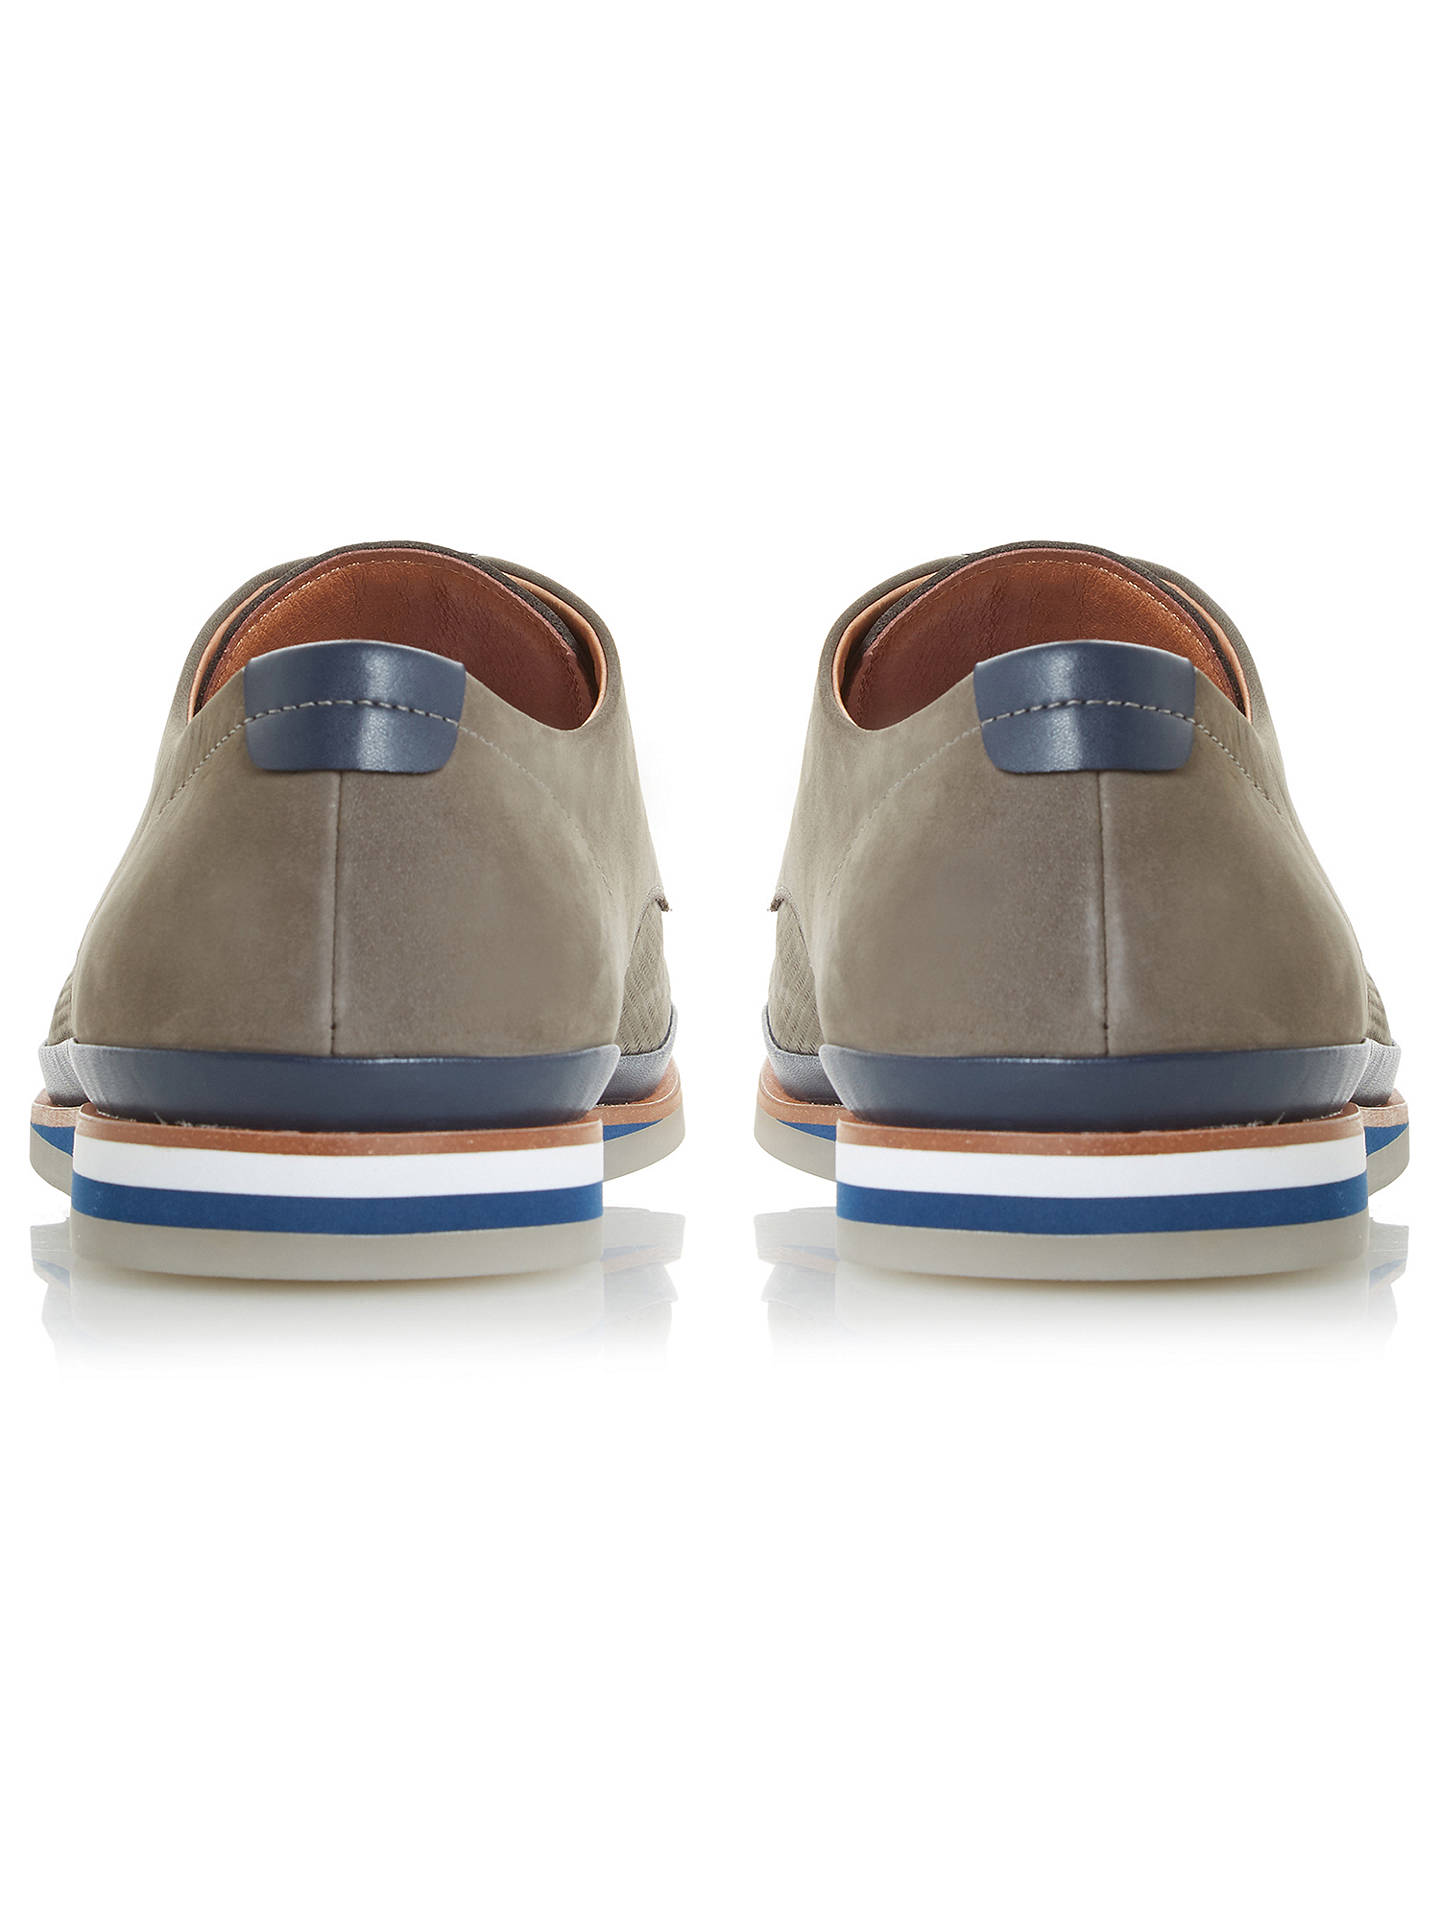 BuyBertie Booster Gibson Shoes, Grey Nubuck, 6 Online at johnlewis.com